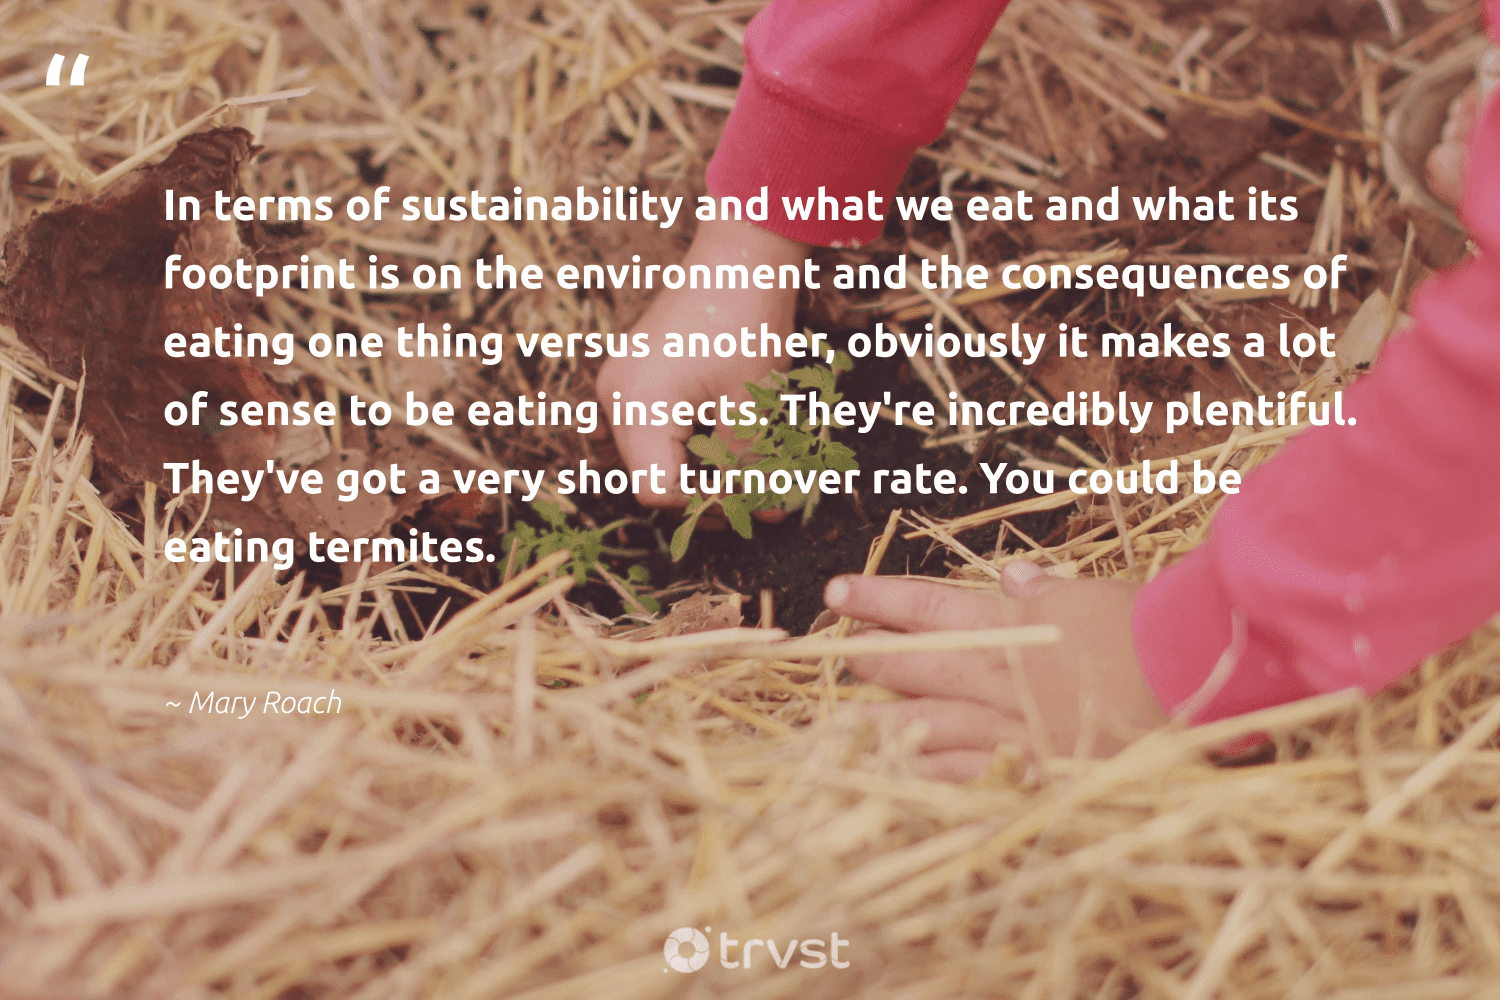 """""""In terms of sustainability and what we eat and what its footprint is on the environment and the consequences of eating one thing versus another, obviously it makes a lot of sense to be eating insects. They're incredibly plentiful. They've got a very short turnover rate. You could be eating termites.""""  - Mary Roach #trvst #quotes #sustainability #environment #insects #planet #green #gogreen #socialimpact #mothernature #fashion #climatechange"""